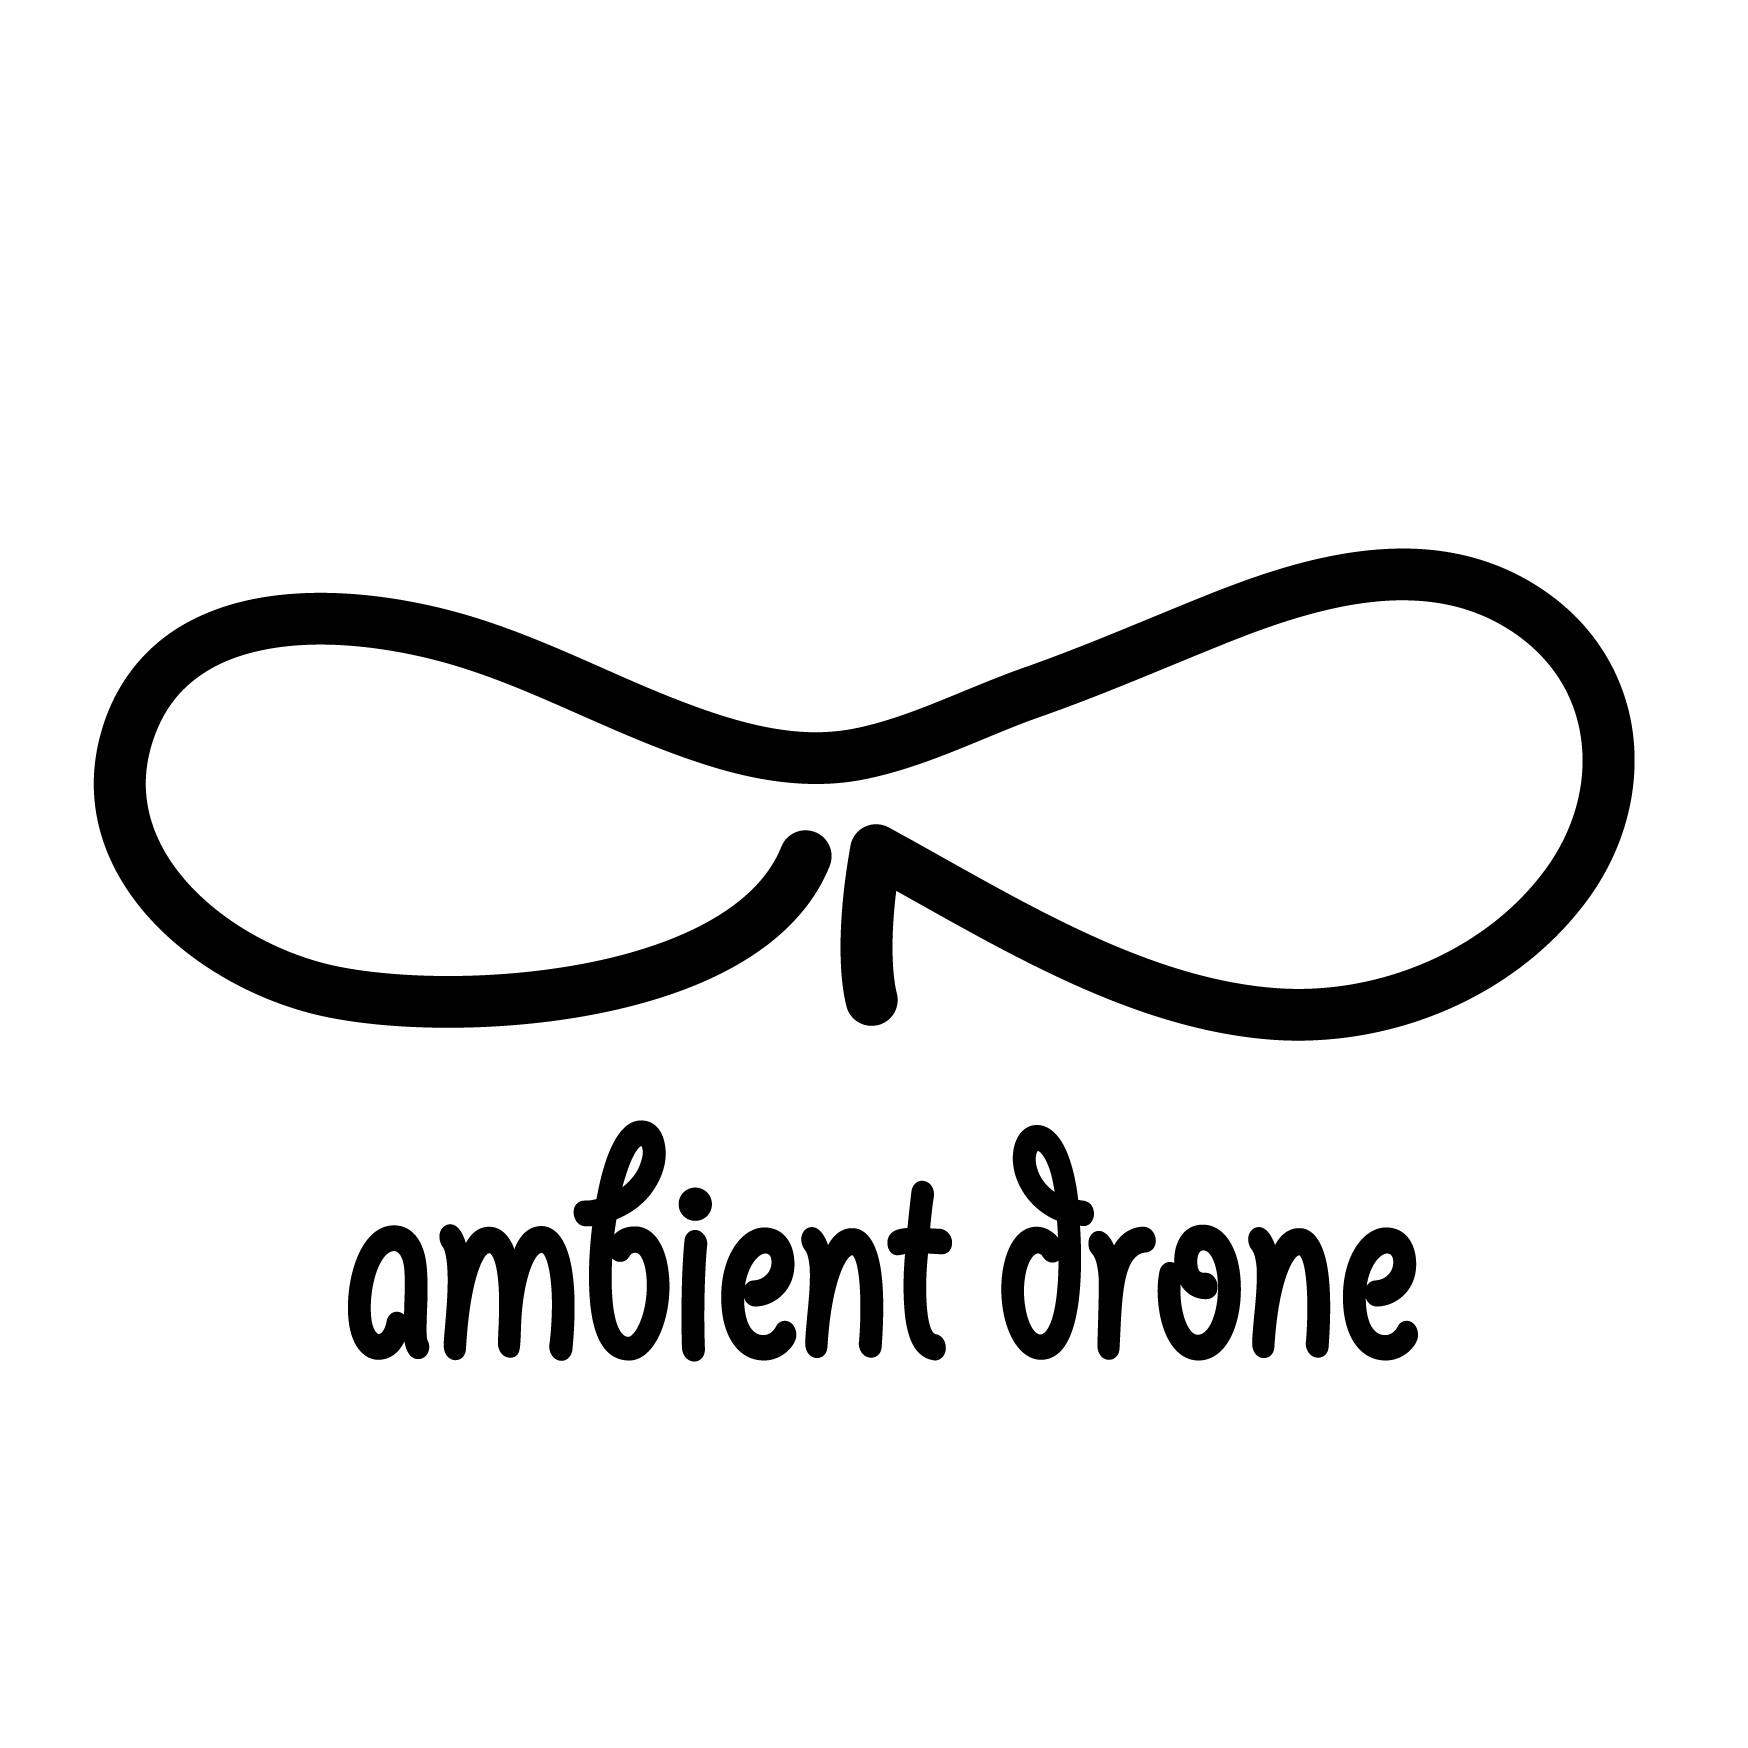 ambient drone